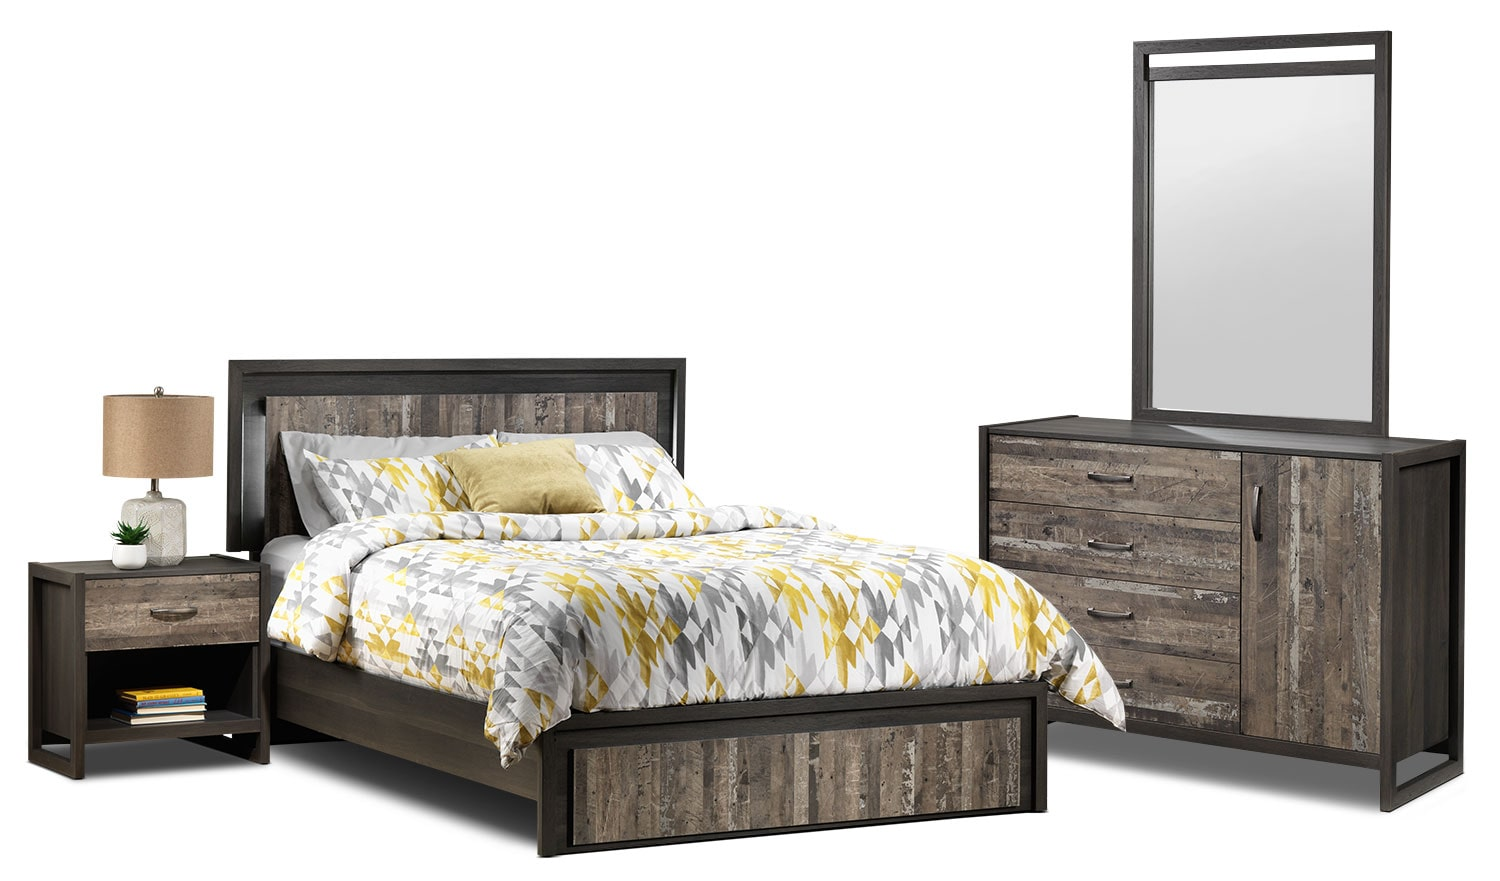 Hudson 5-Piece Queen Bedroom Set - Rustic Brown